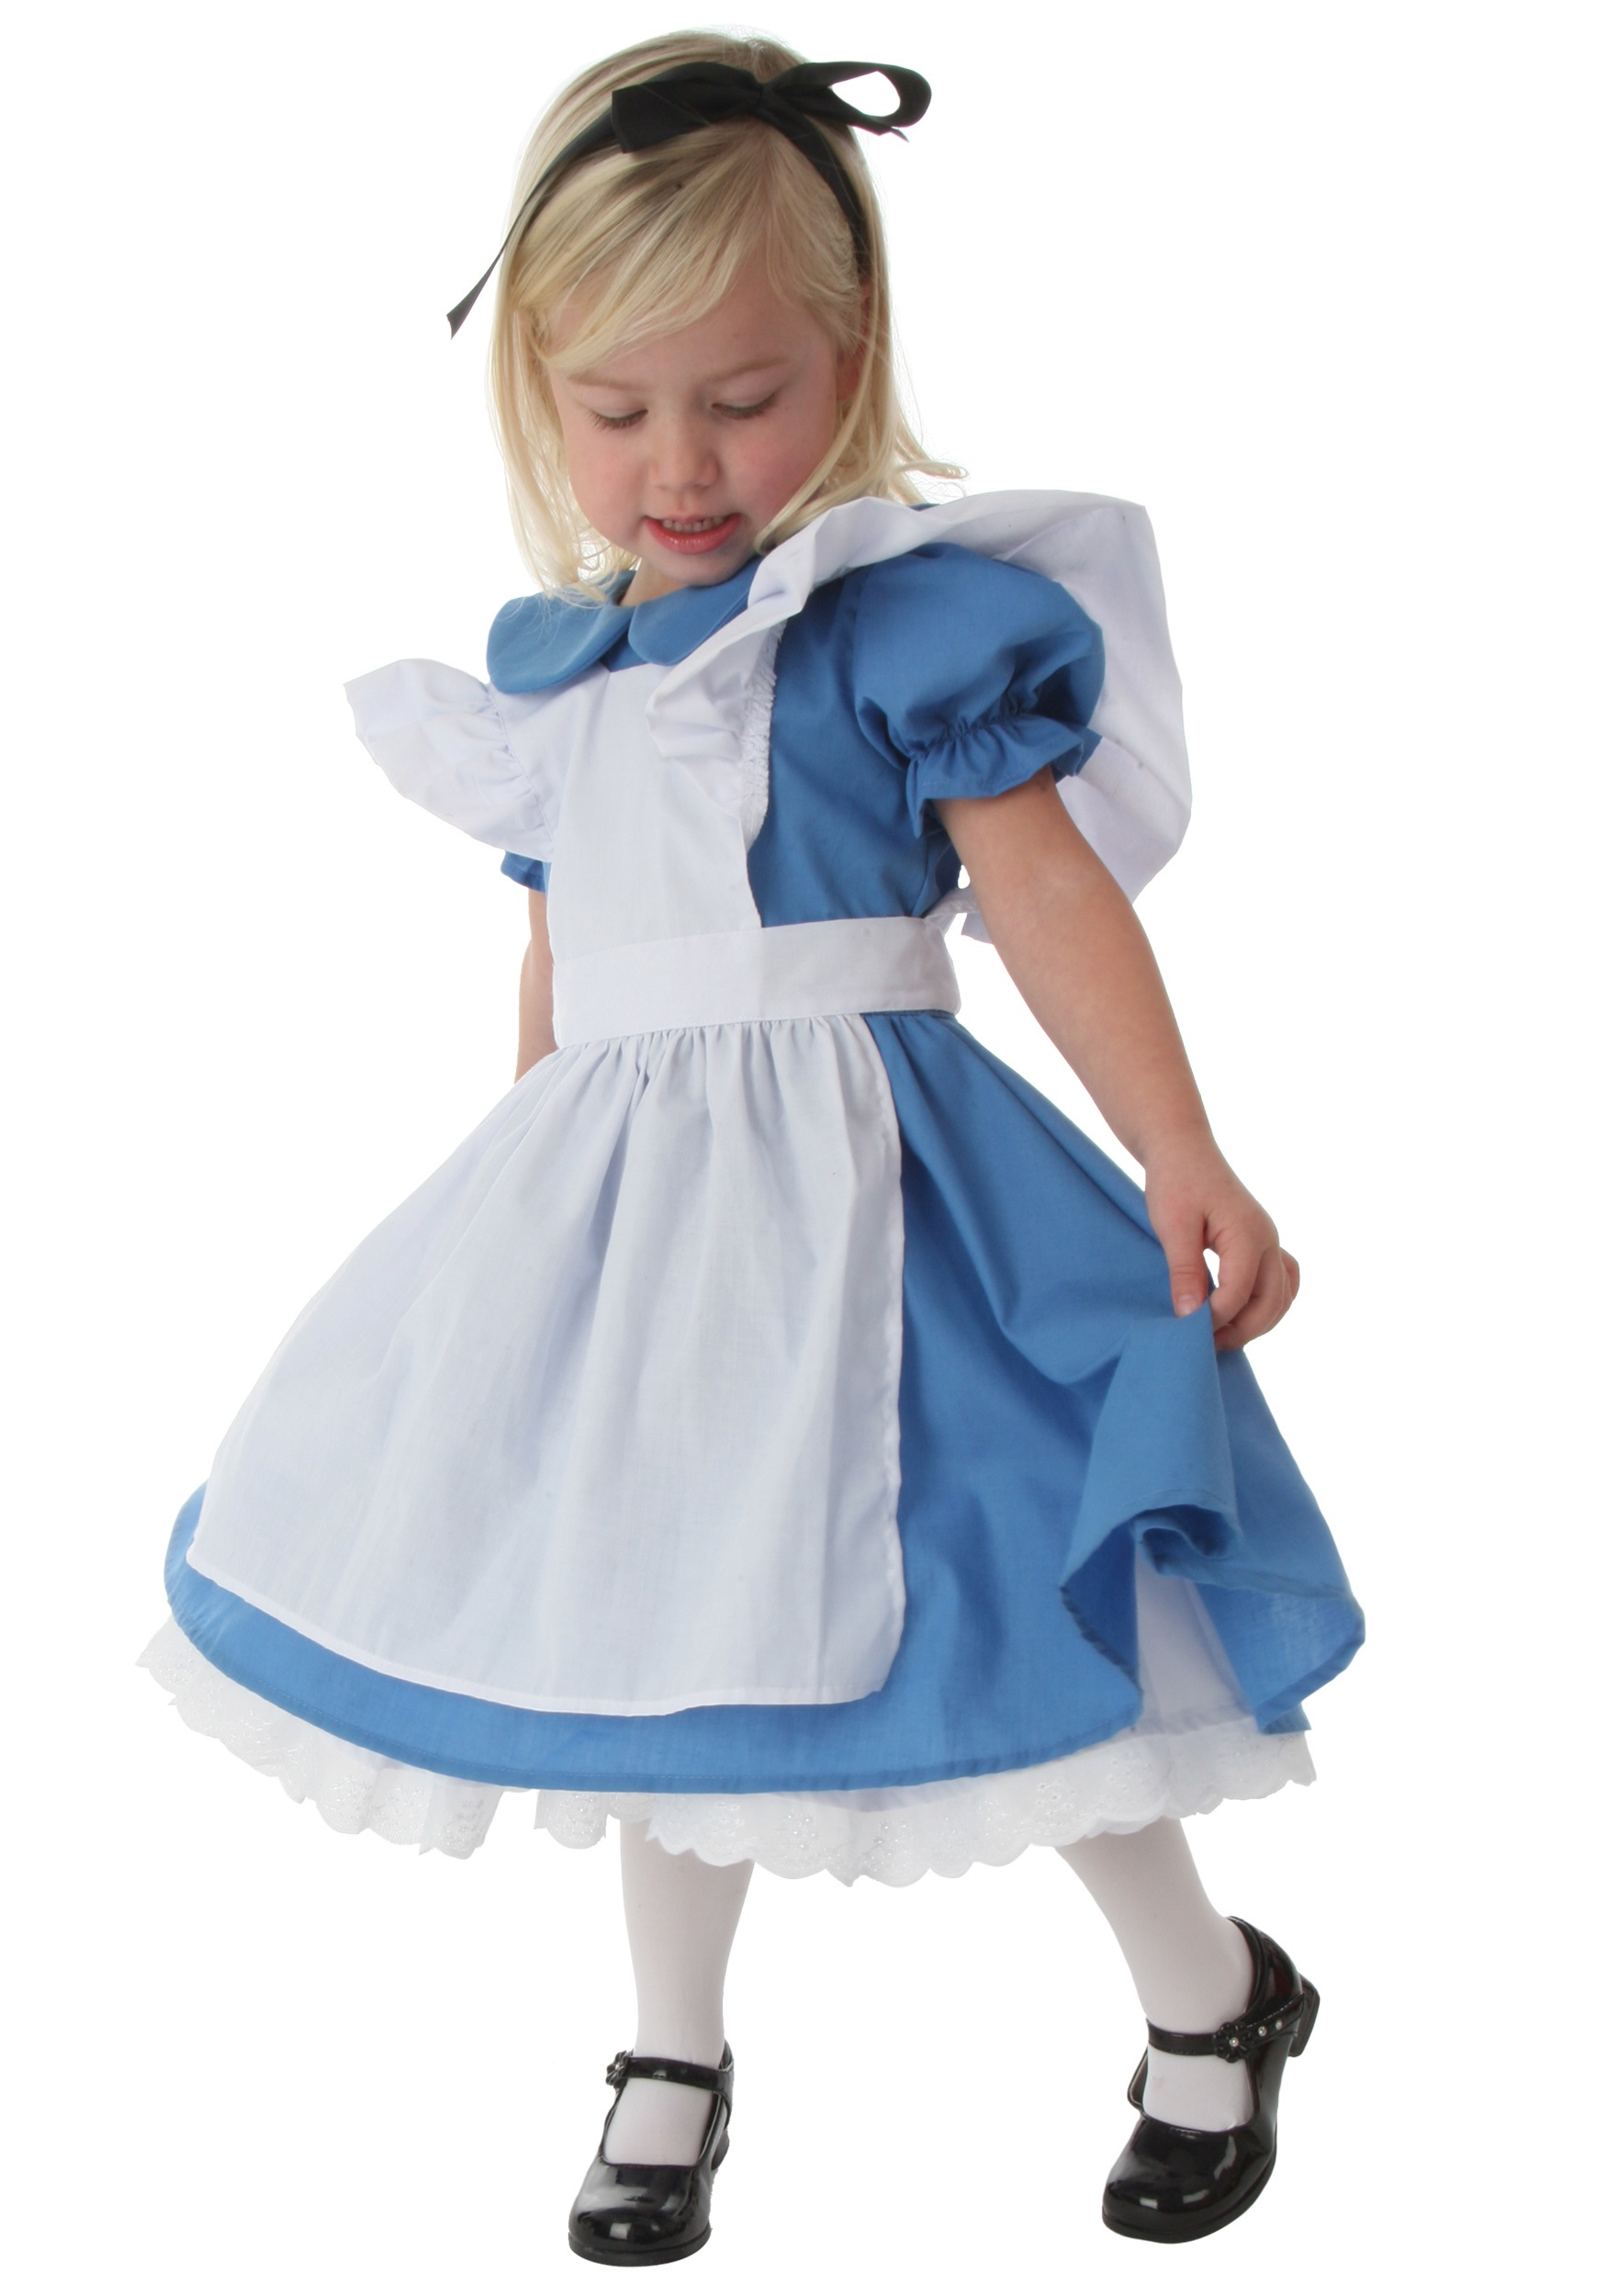 Deluxe Toddler Alice Costume  sc 1 st  Halloween Costumes & Deluxe Toddler Alice Costume - Halloween Costumes